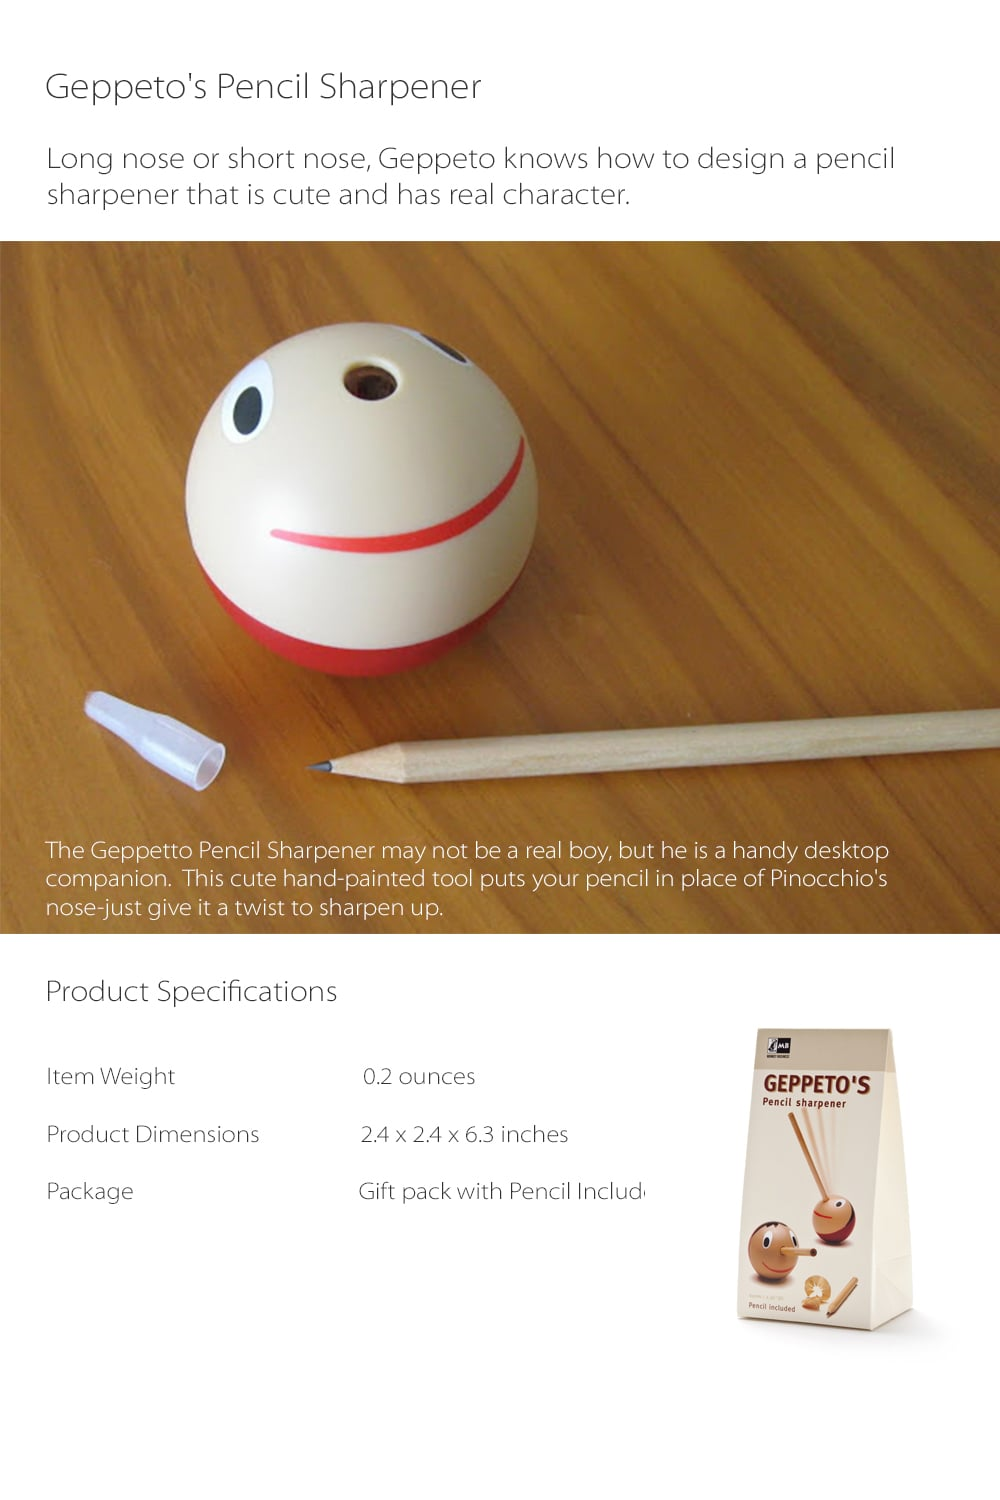 Geppeto's Pencil Sharpener Long Nose Or Short Nose